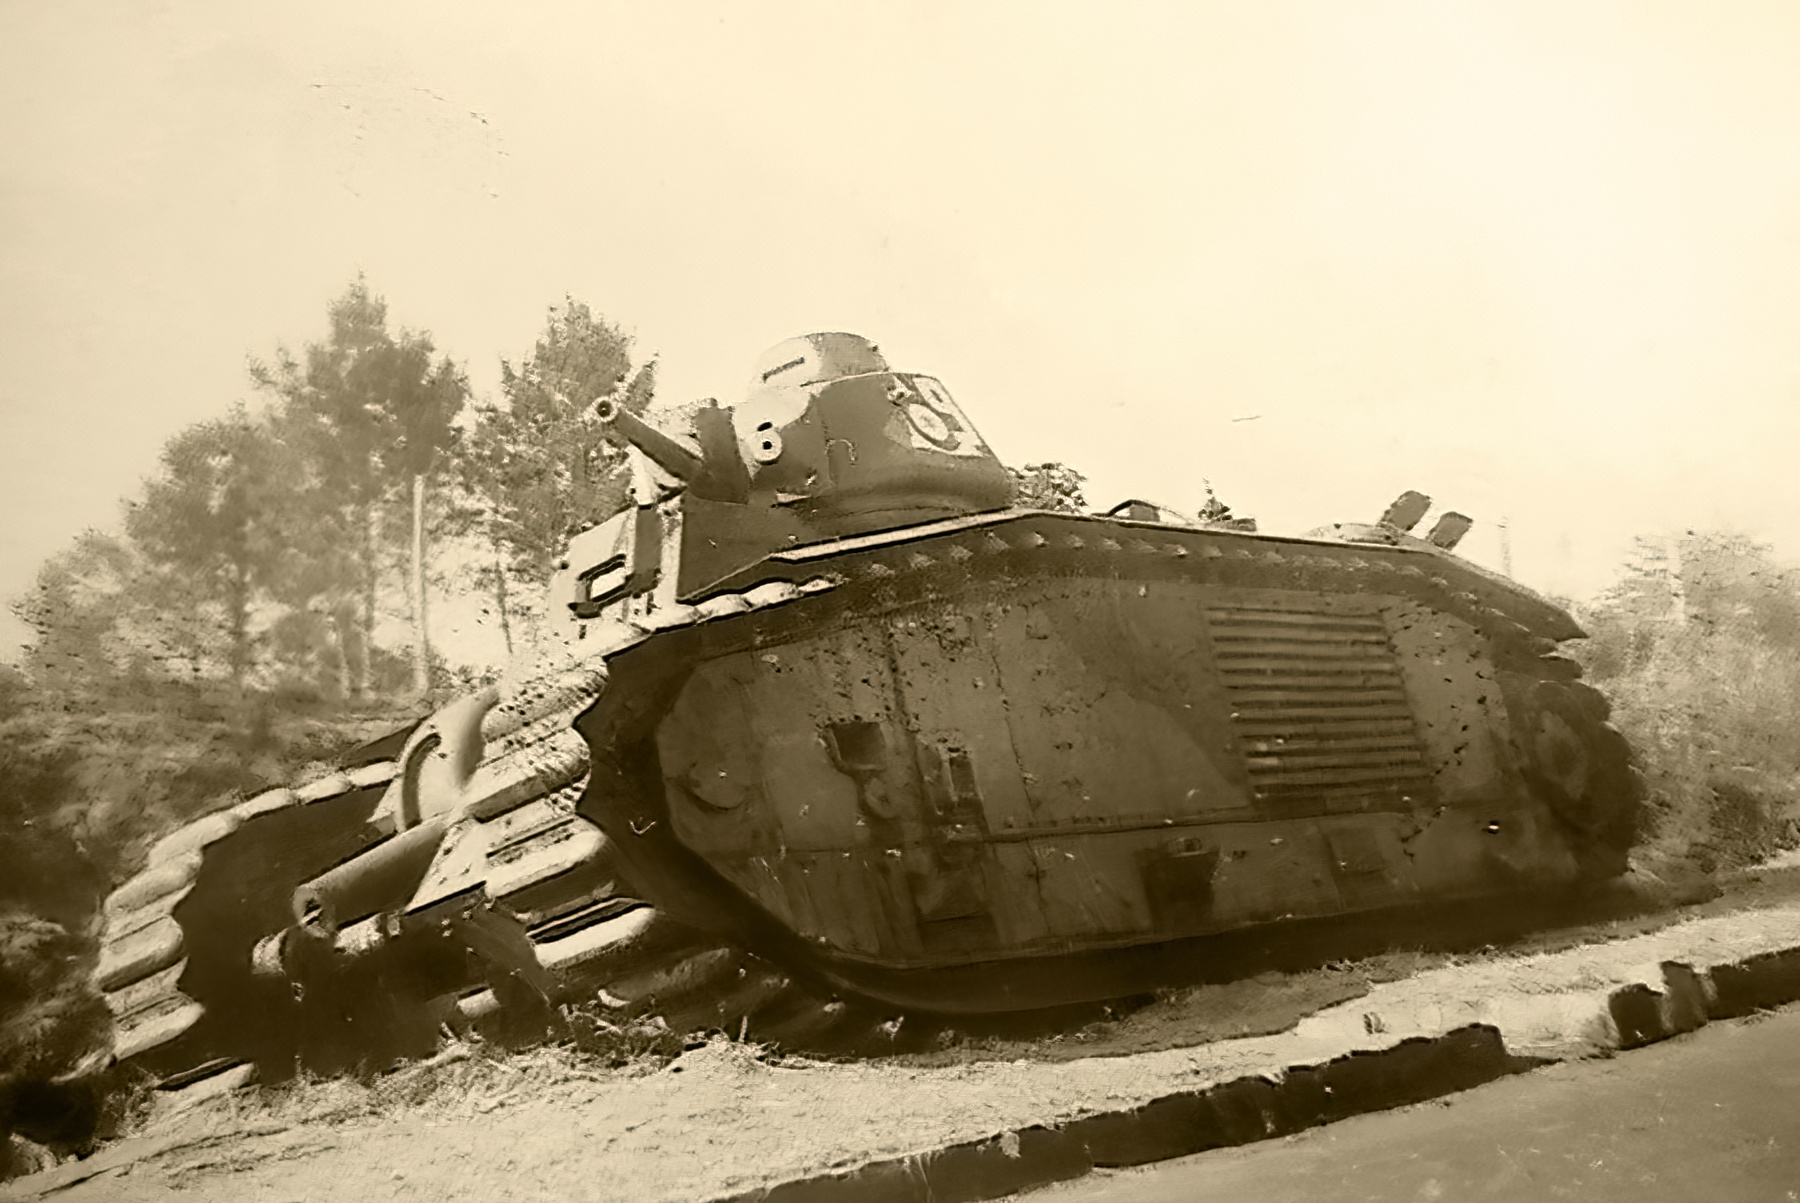 French Army Renault Char B1bis abandoned during the battle of France 1940 ebay 05